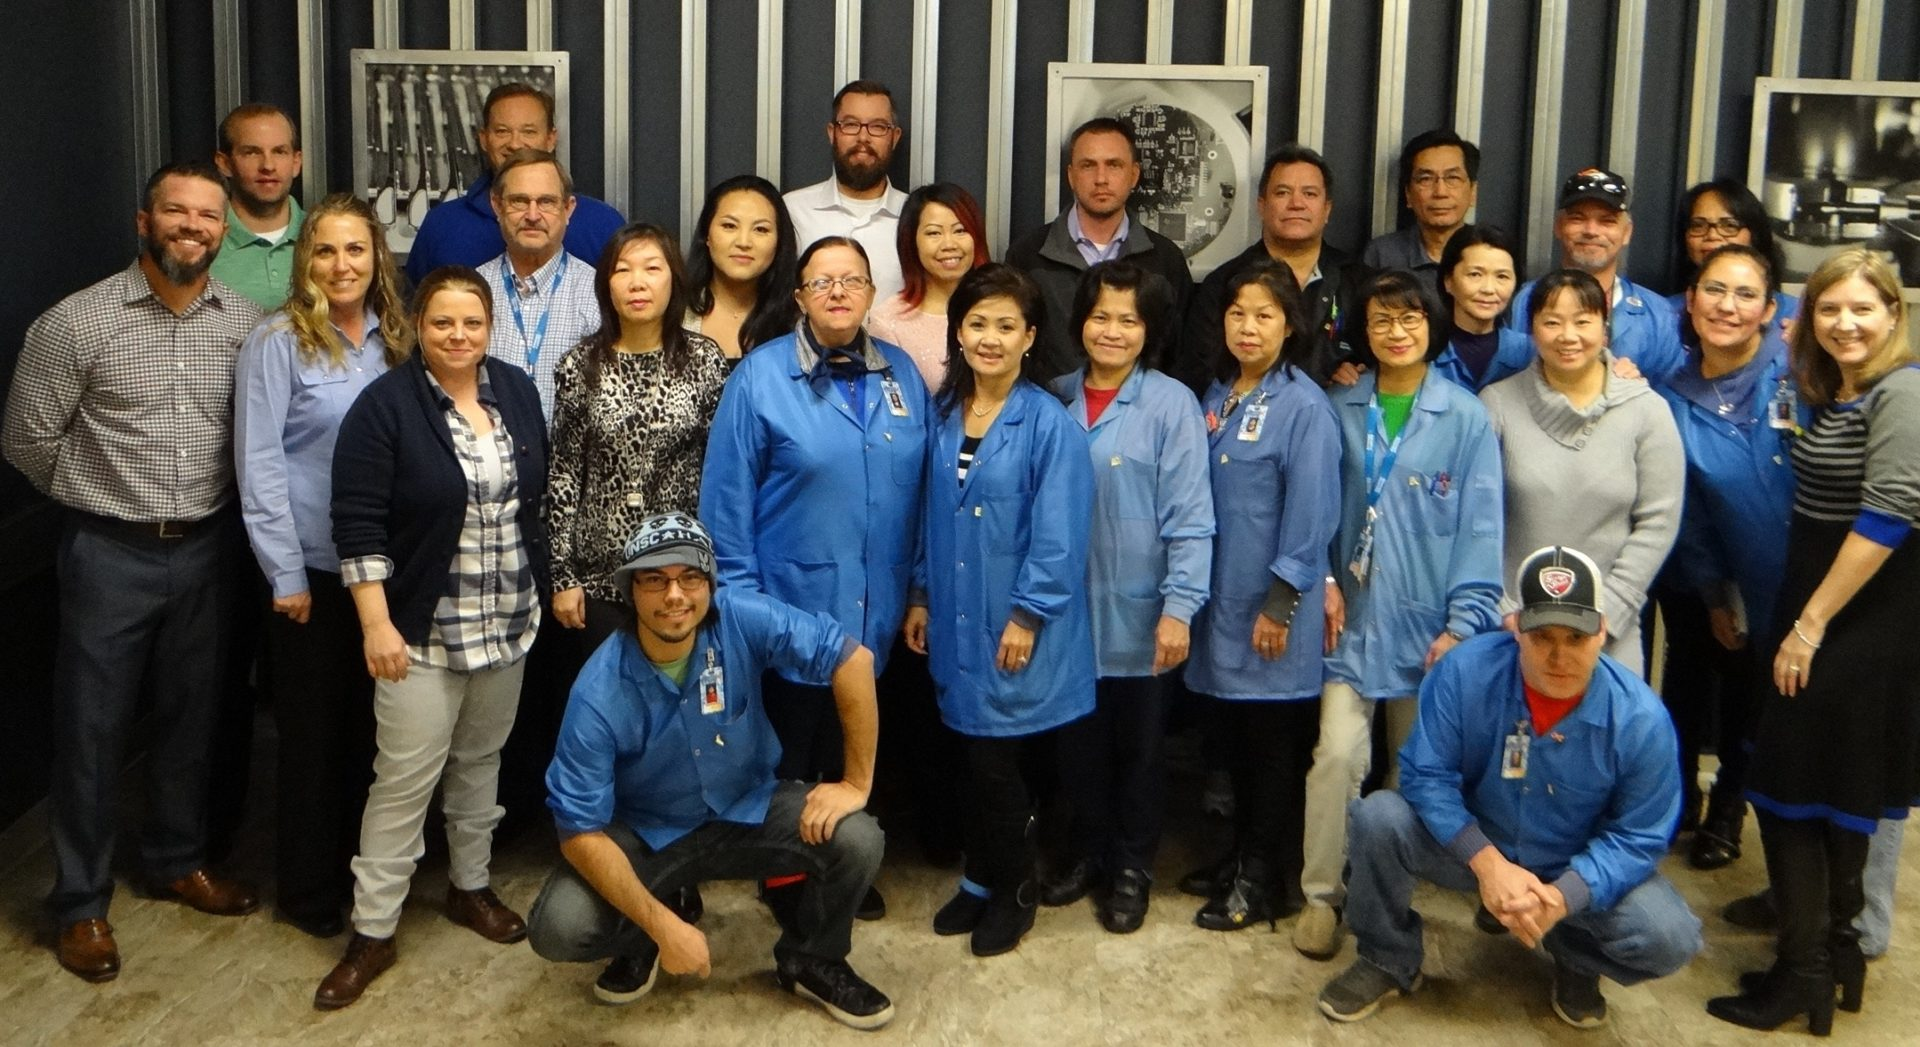 group photo of Advanced Assembly employees in blue jackets